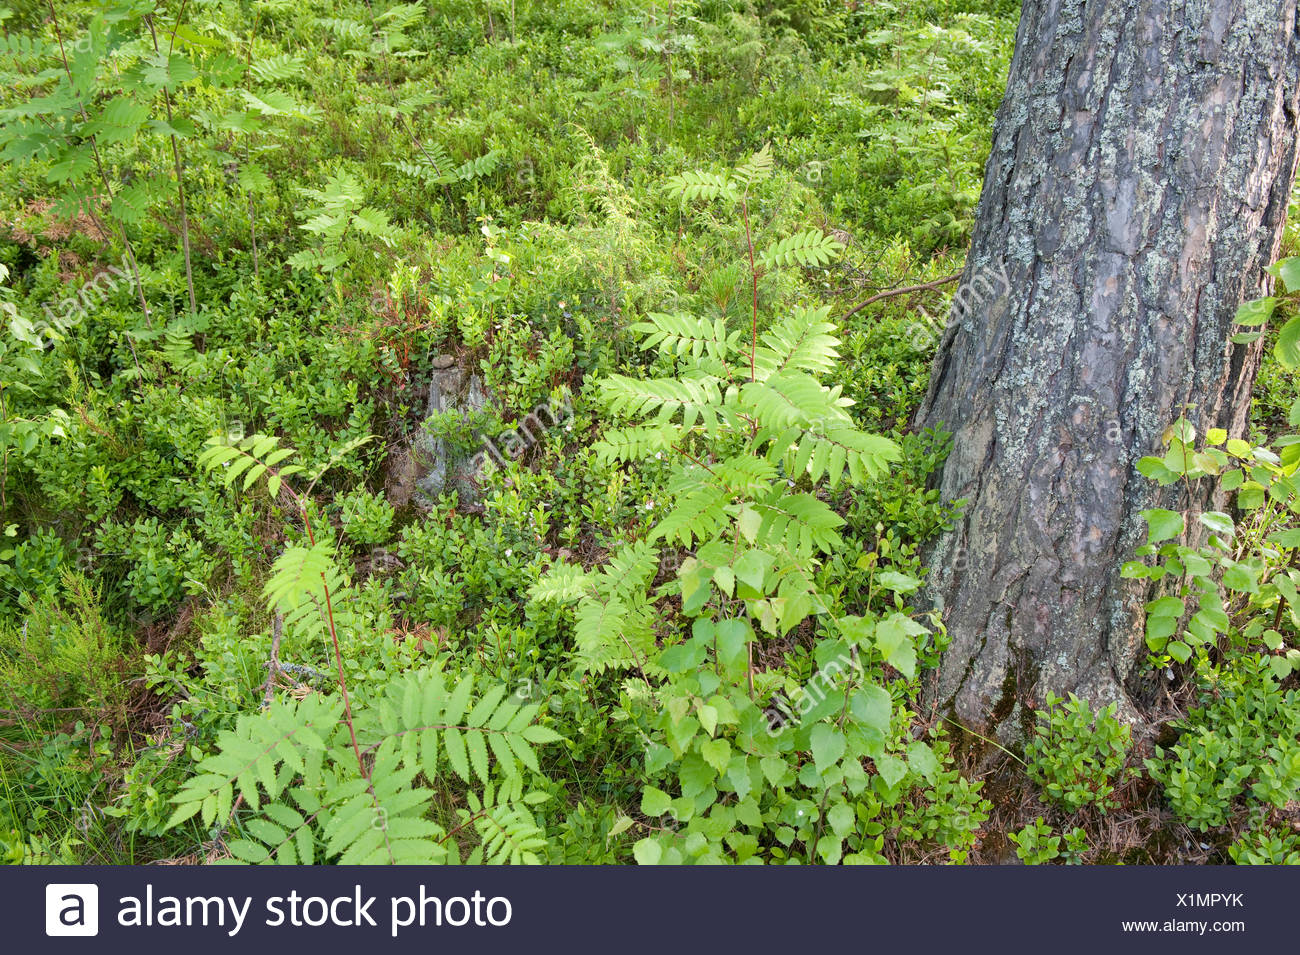 Woodland floor with ferns, Sujonenjoki, nr Kuopio Finland - Stock Image